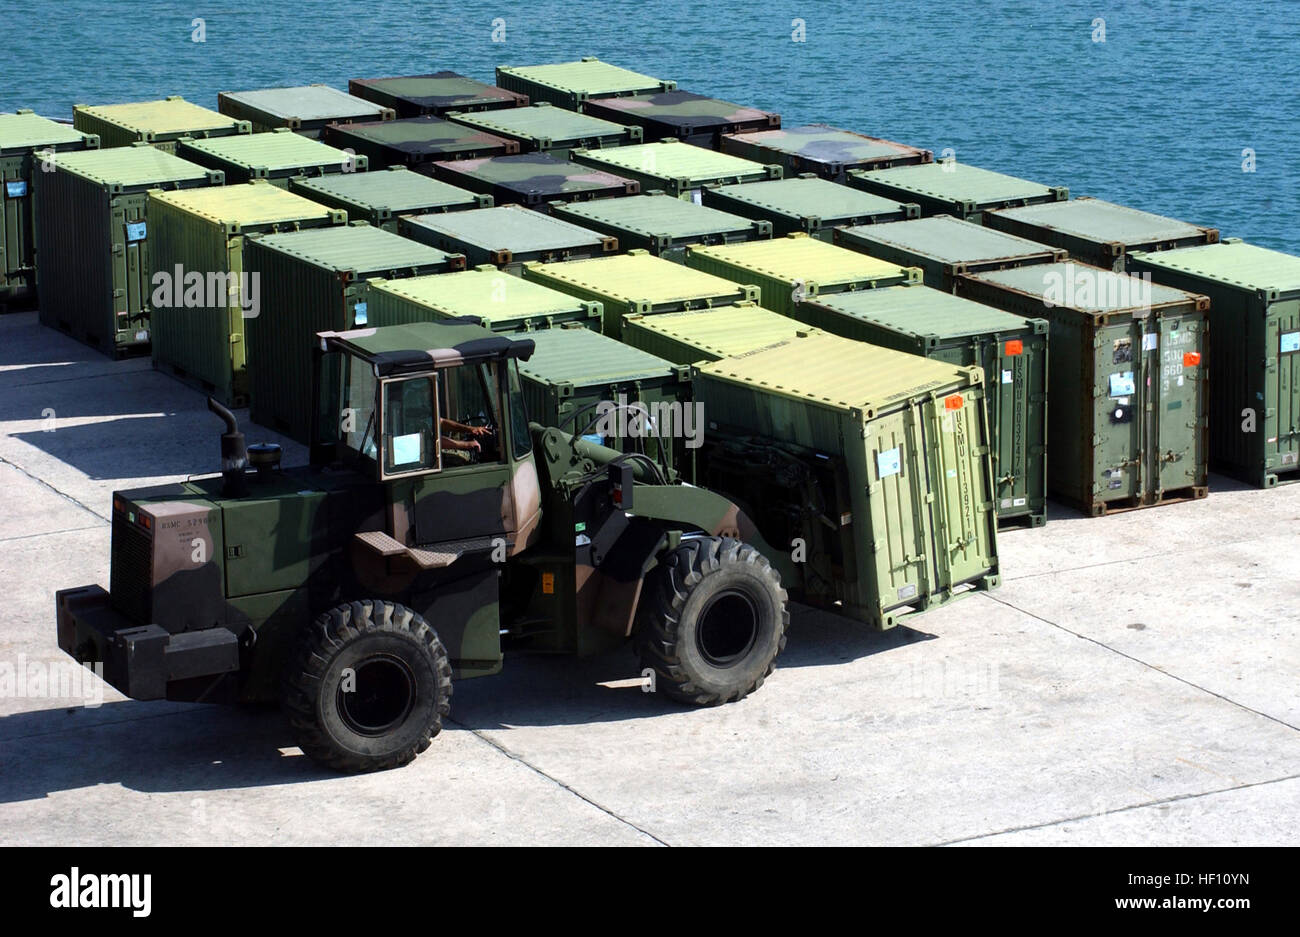 051010-M-0596N-001 Kin Red Port, Okinawa, Japan (Oct. 10, 2005) - A tractor moves a quadcon container at Kin Red - Stock Image